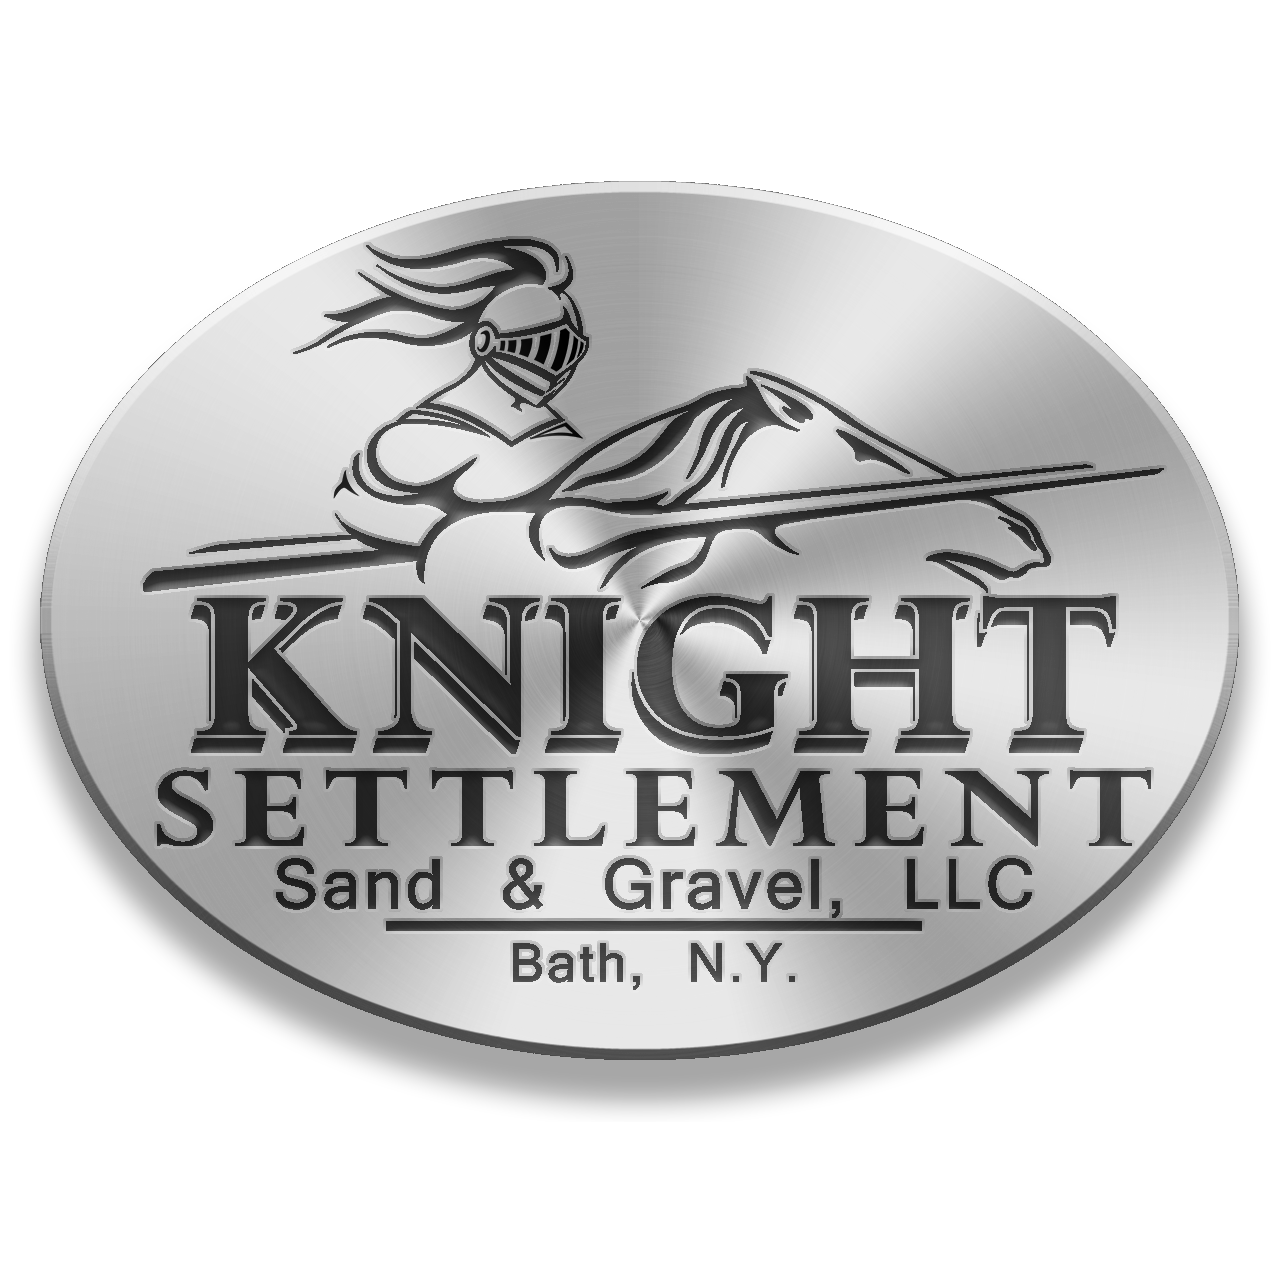 Knight Settlement Sand & Gravel